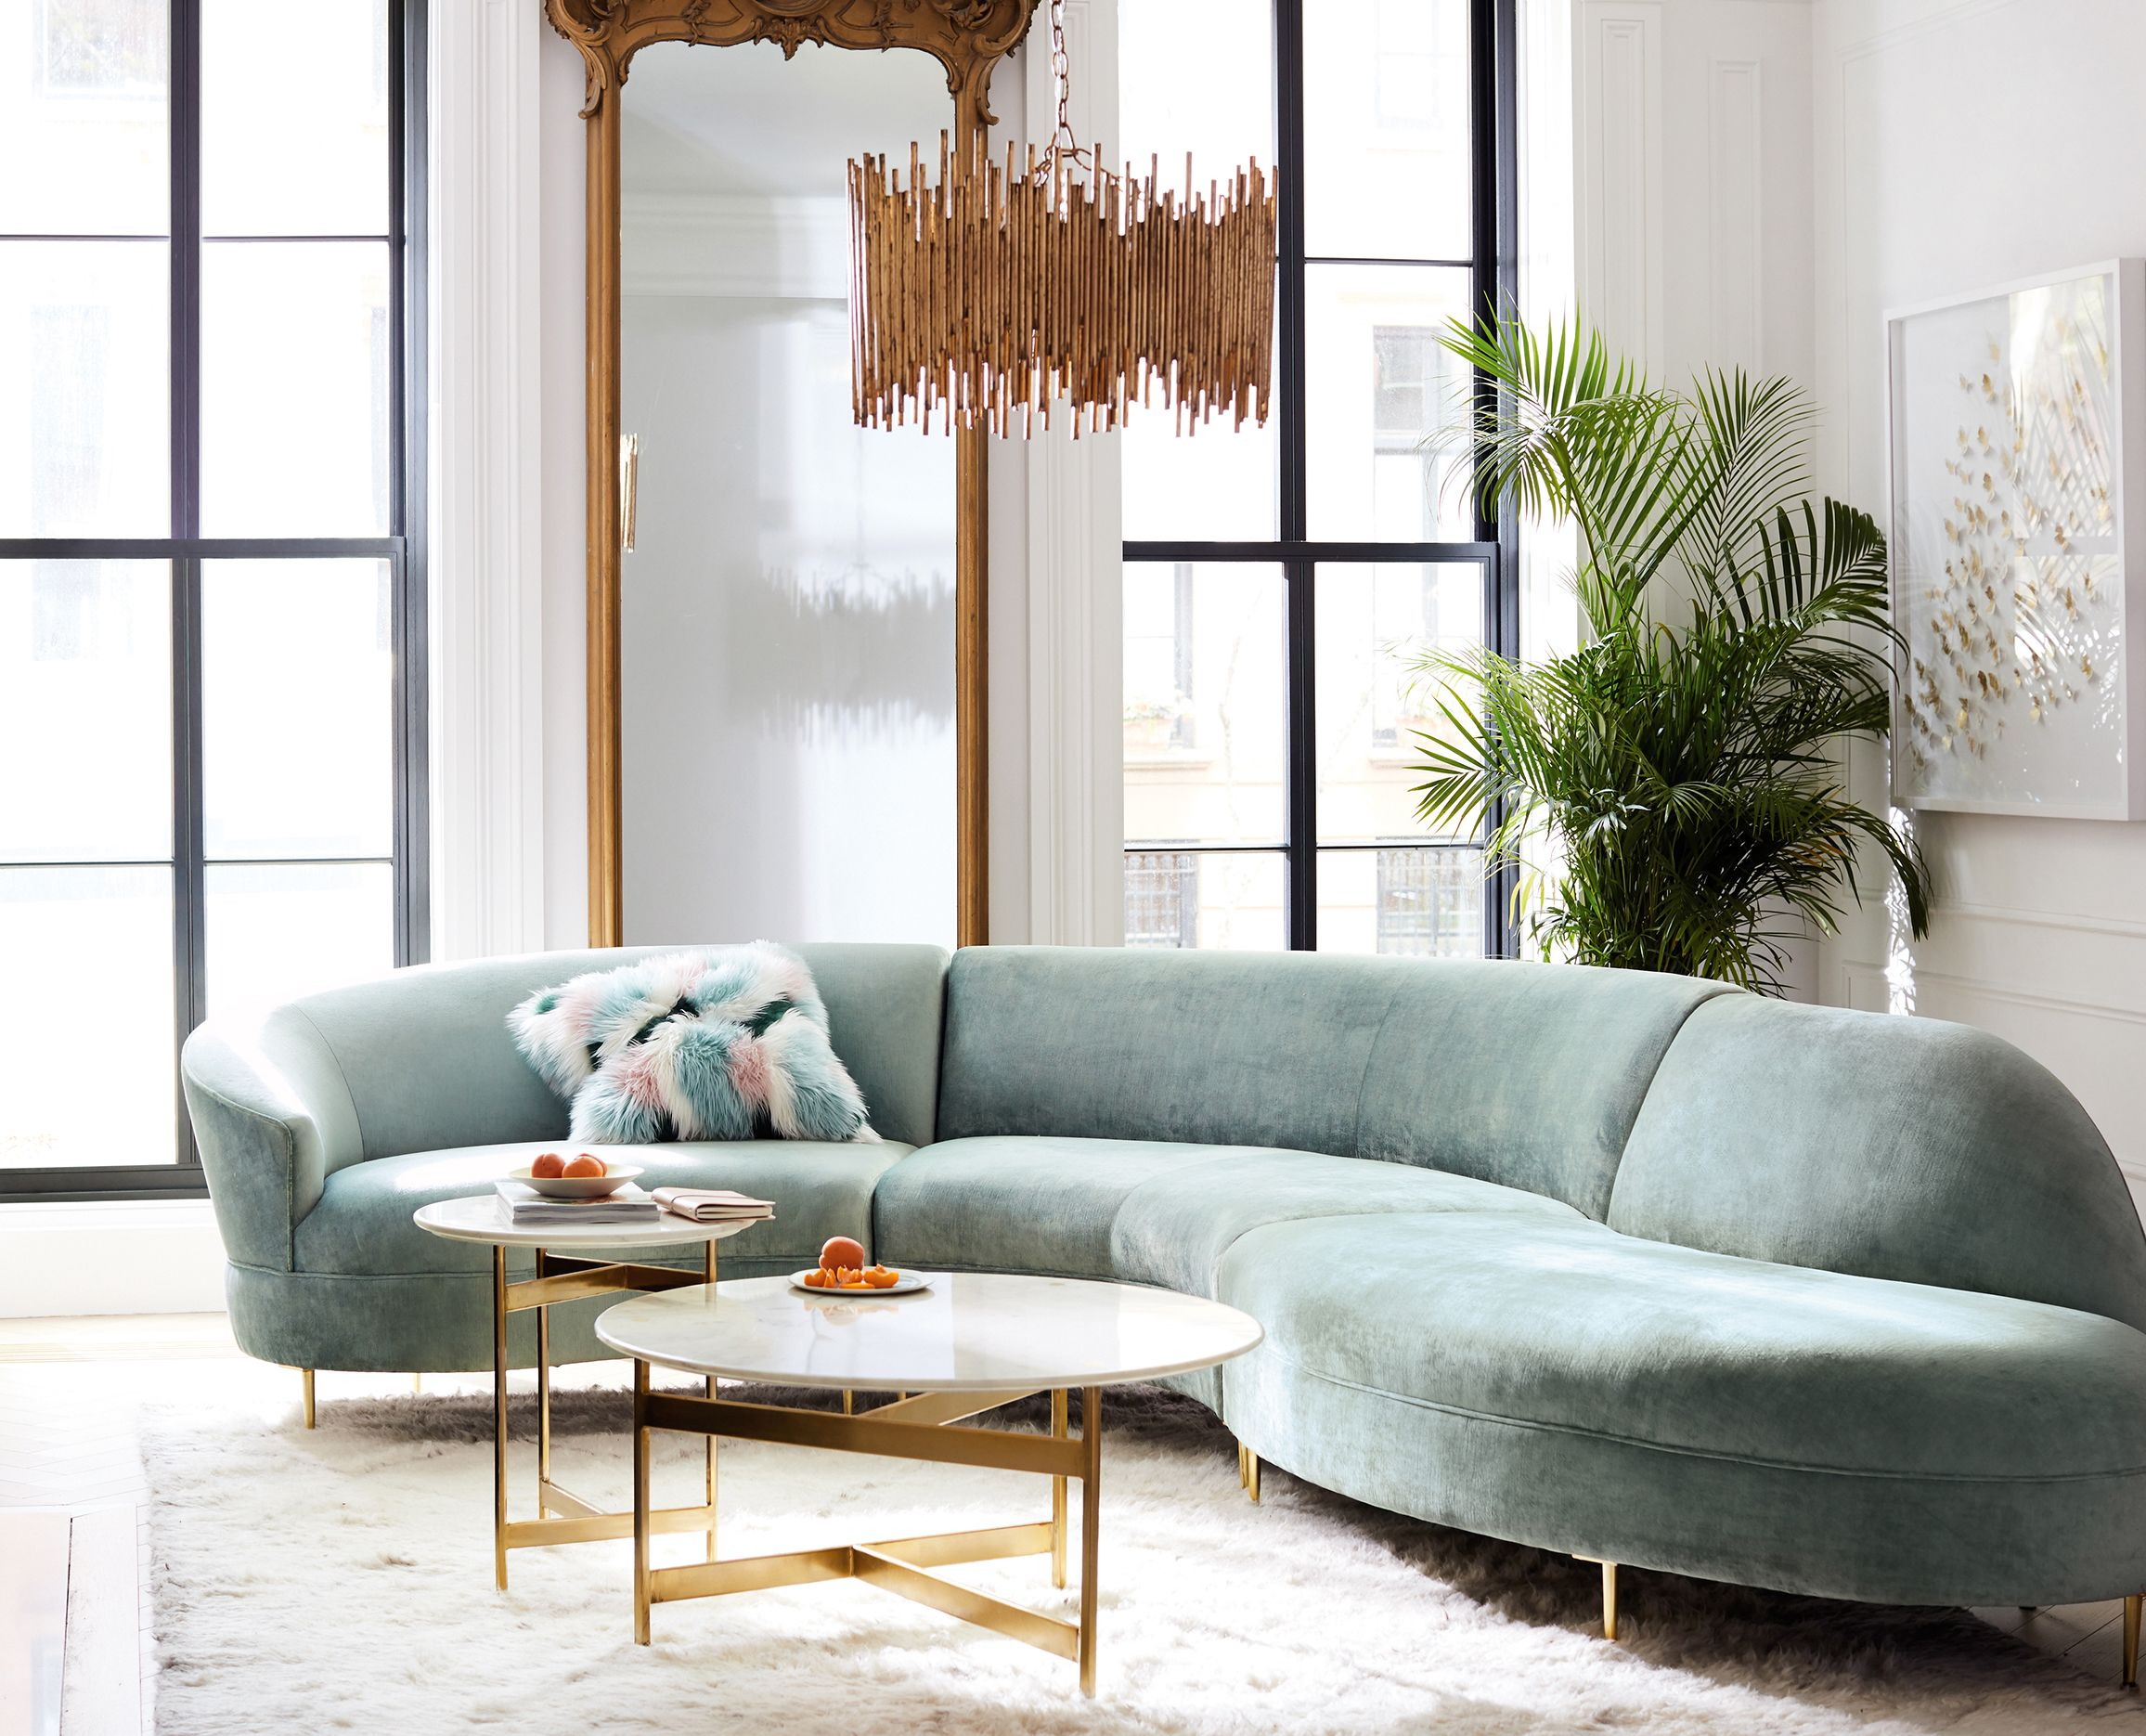 Stupendous Anthropologies Fall 2018 Home Collection Anthropologie Download Free Architecture Designs Scobabritishbridgeorg